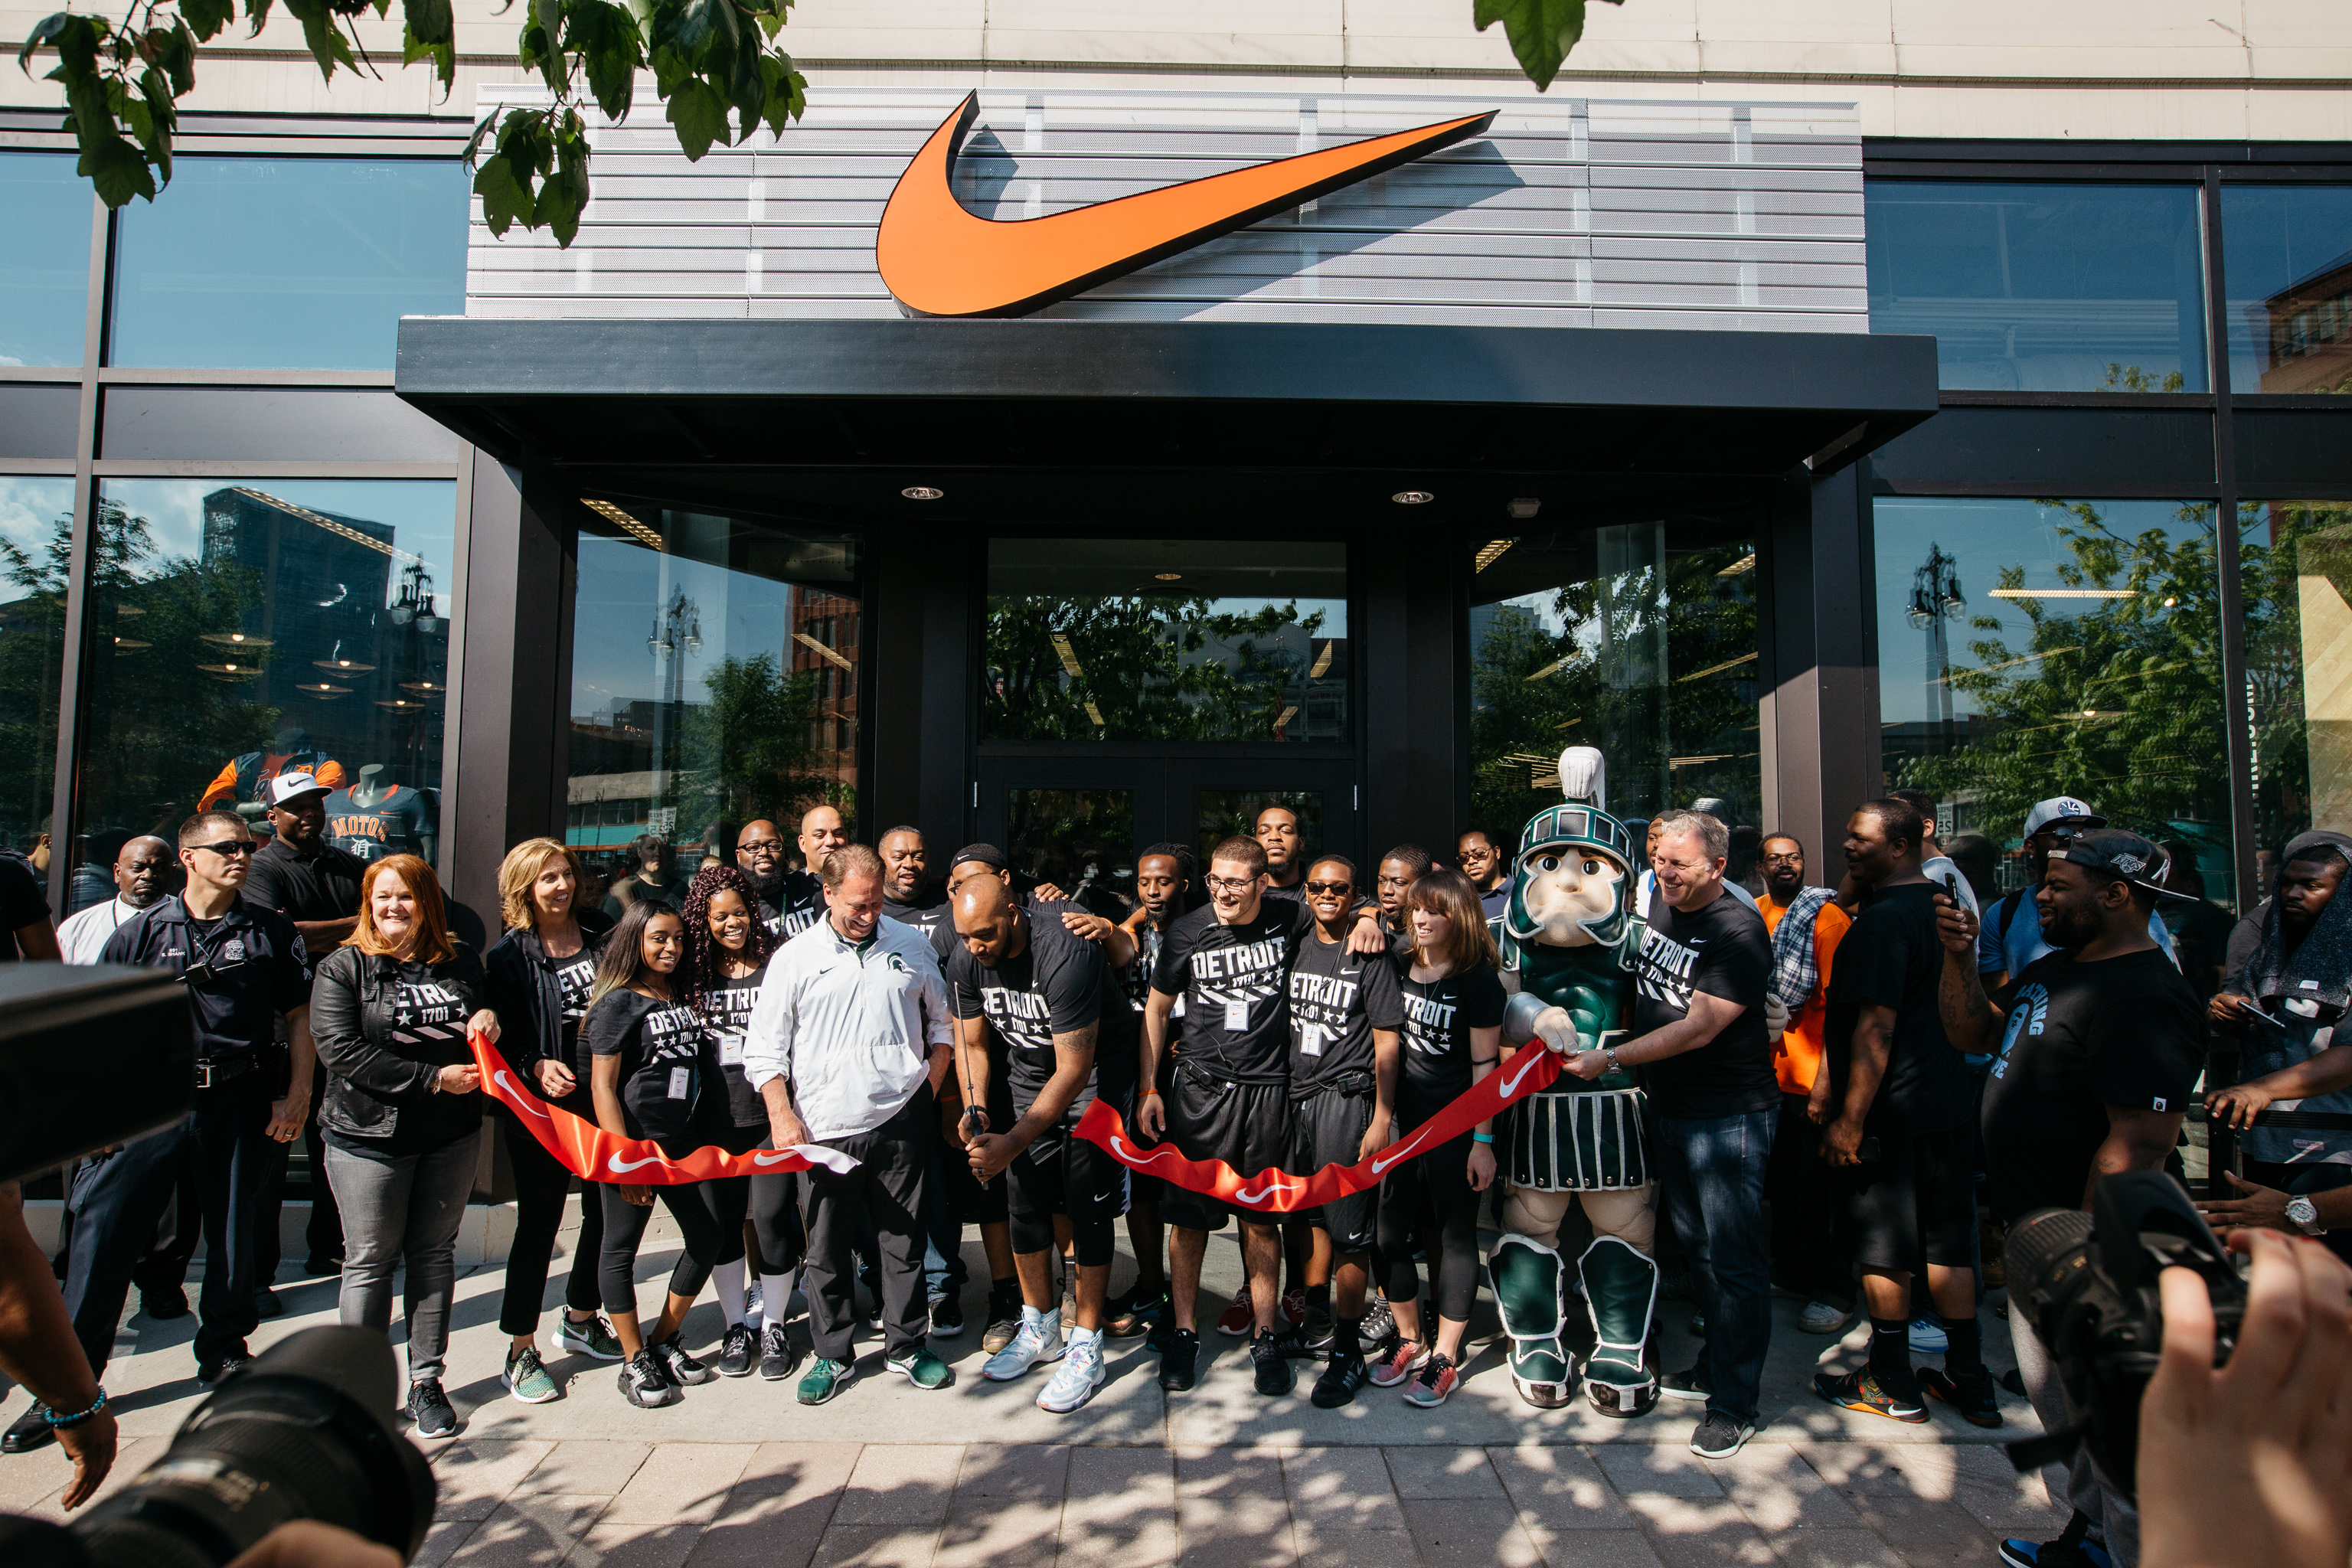 finest selection f86ec d0a3e Nike Community Store Opens Downtown - Curbed Detroit